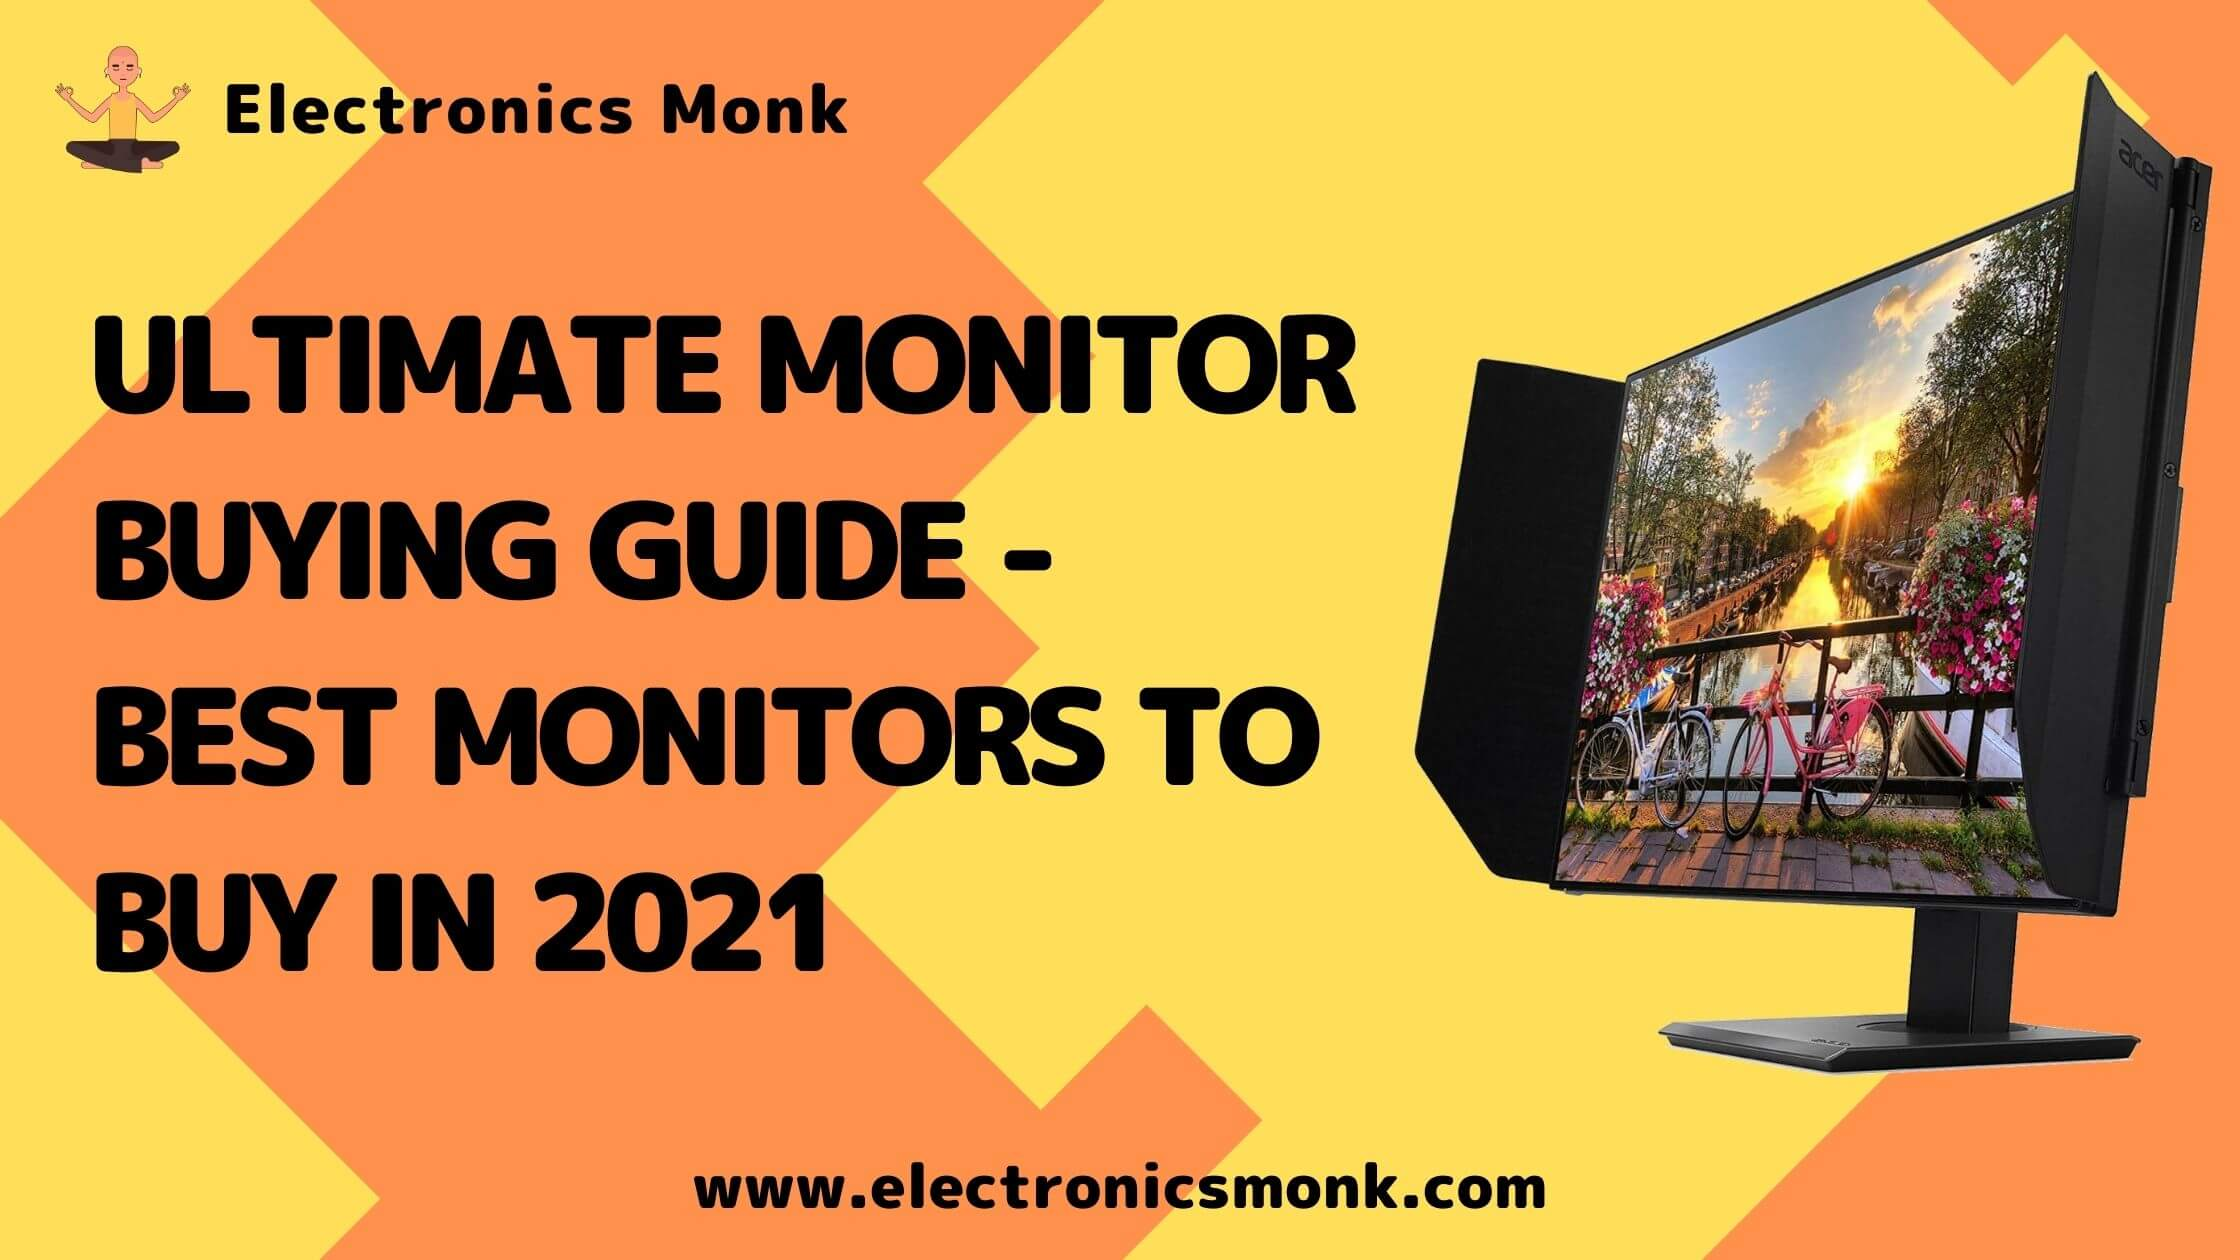 Ultimate Monitor Buying Guide - Best Monitors to Buy in 2021